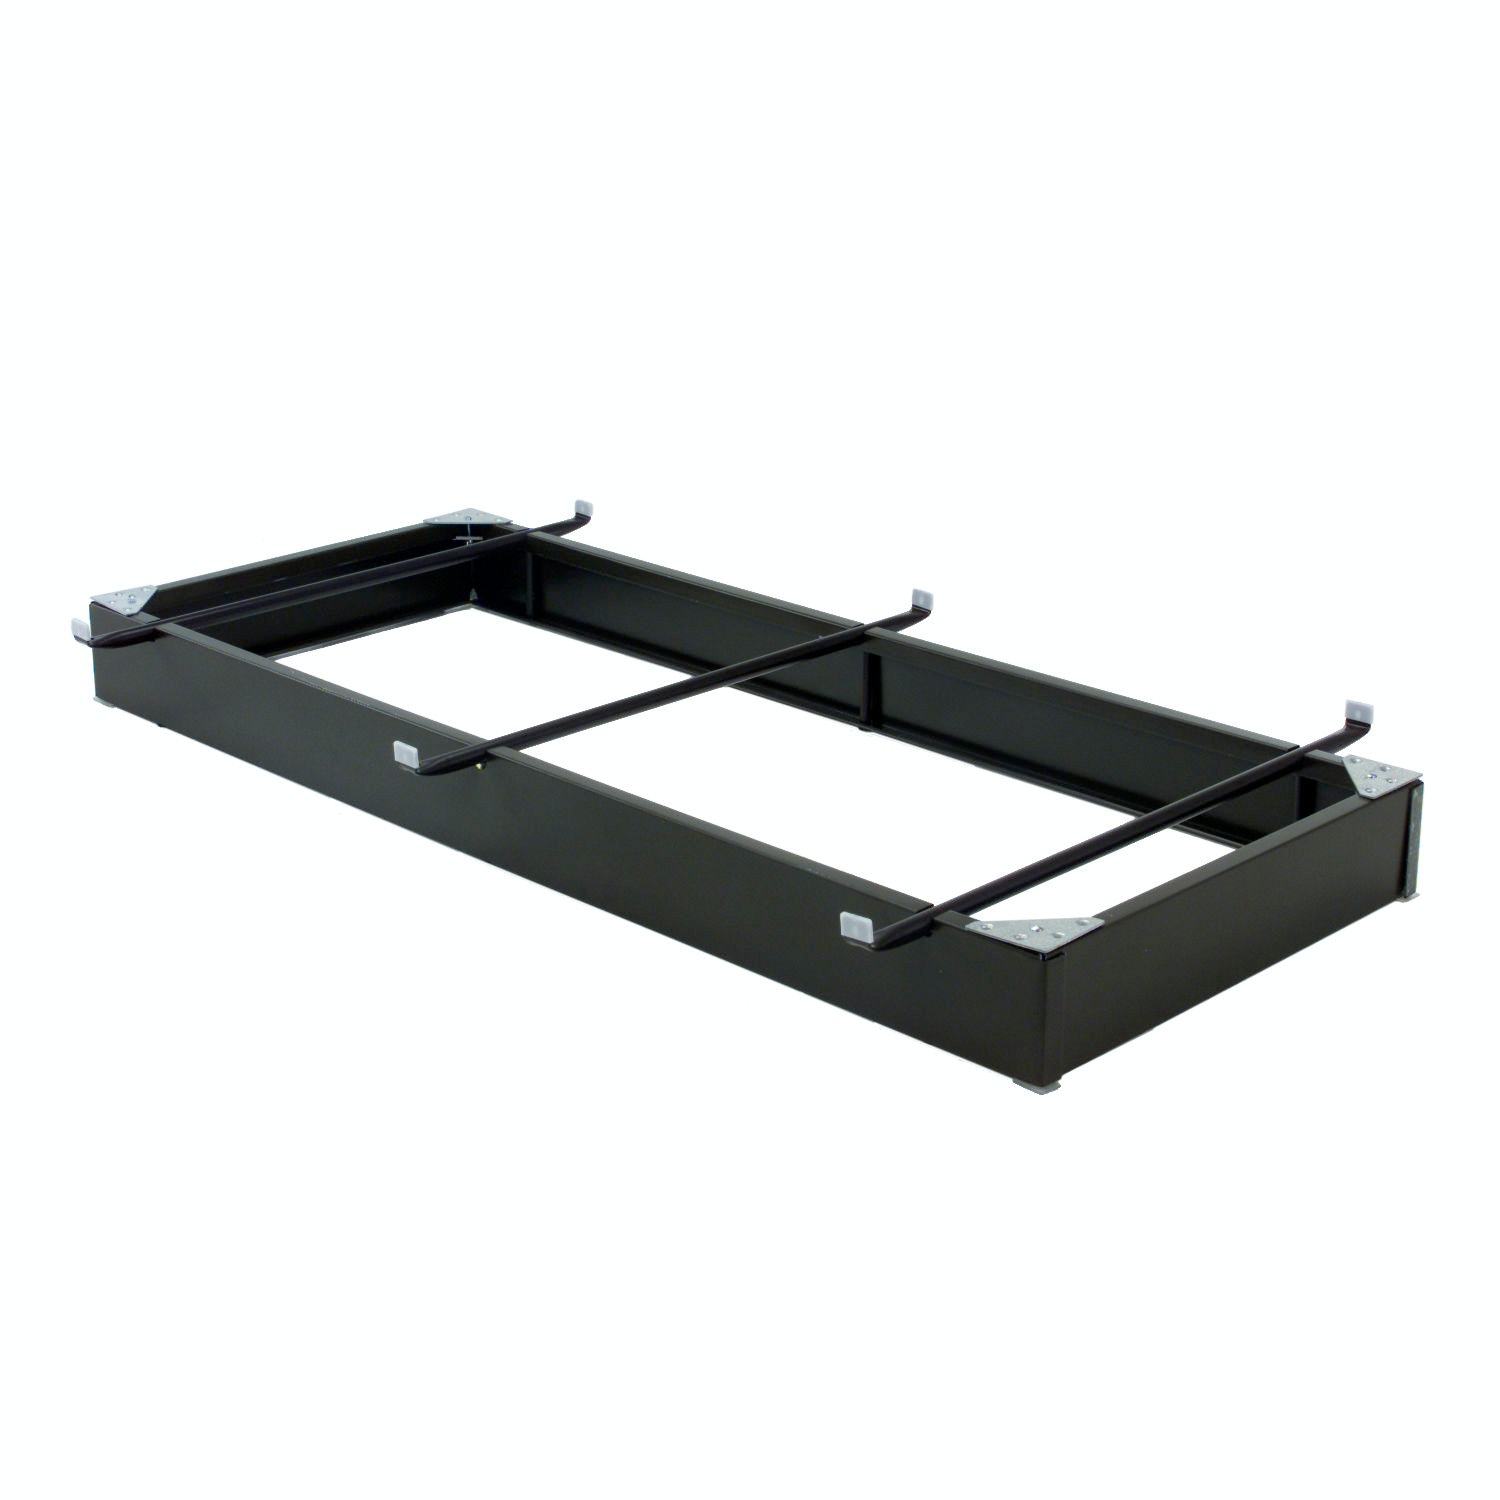 Hospitality Bed Full XL Queen Size Bolt-On Steel Bed Rails with Three Center